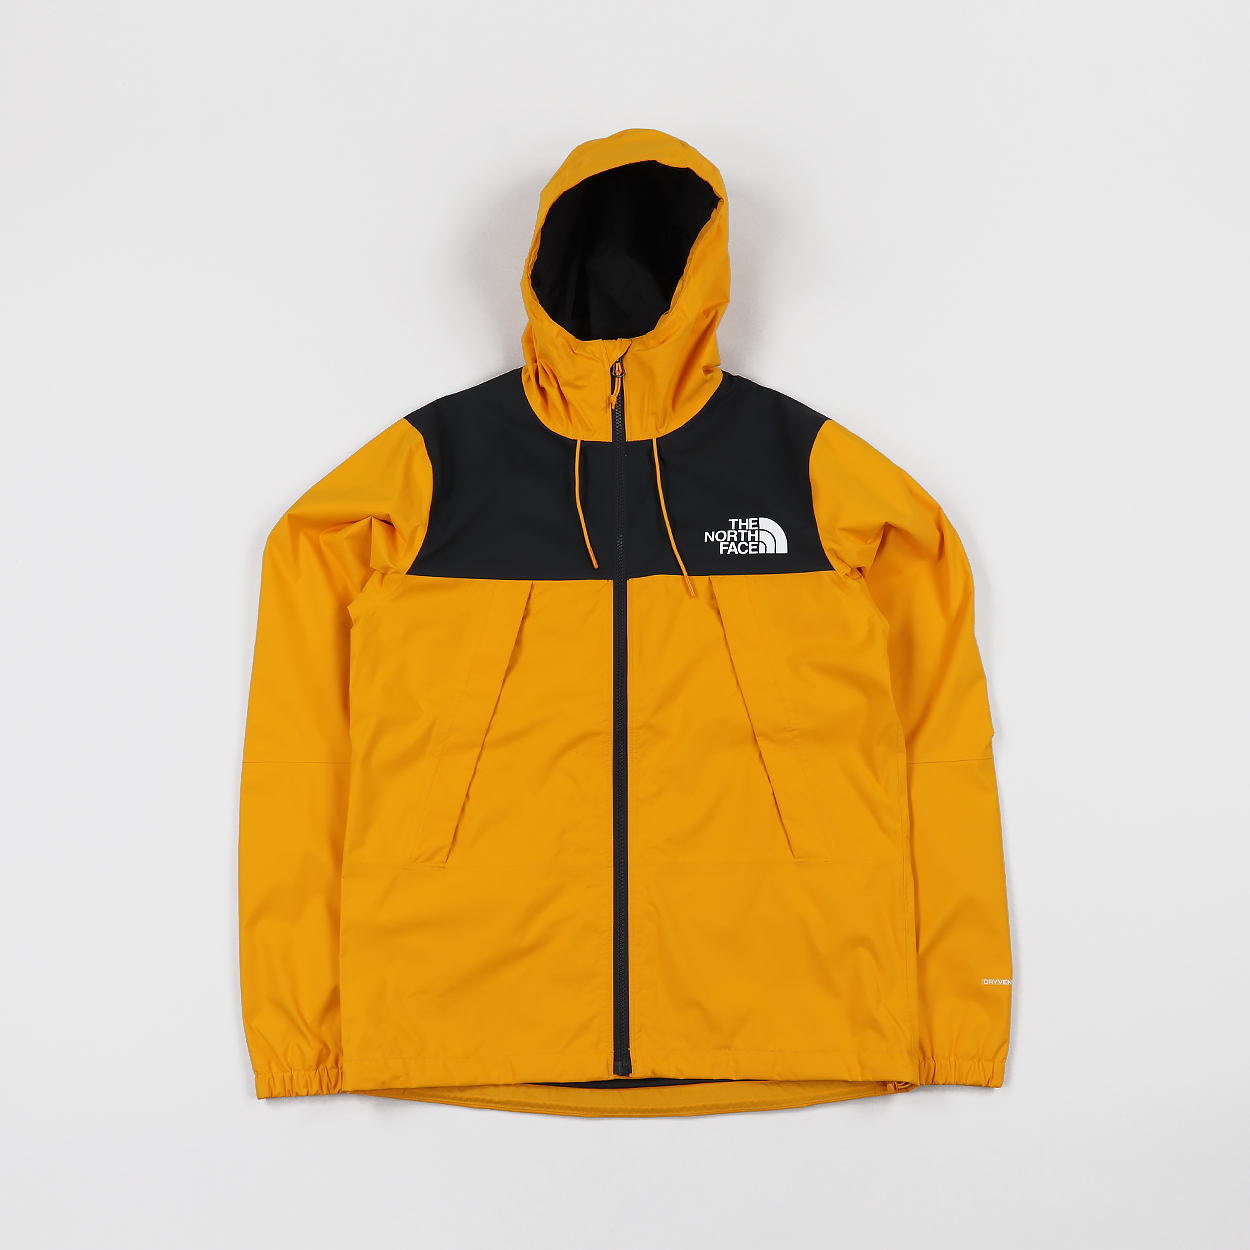 The North Face 1990 Mountain Q Jacket 'Yellow' Quick Look (Feat. Tuape Green)